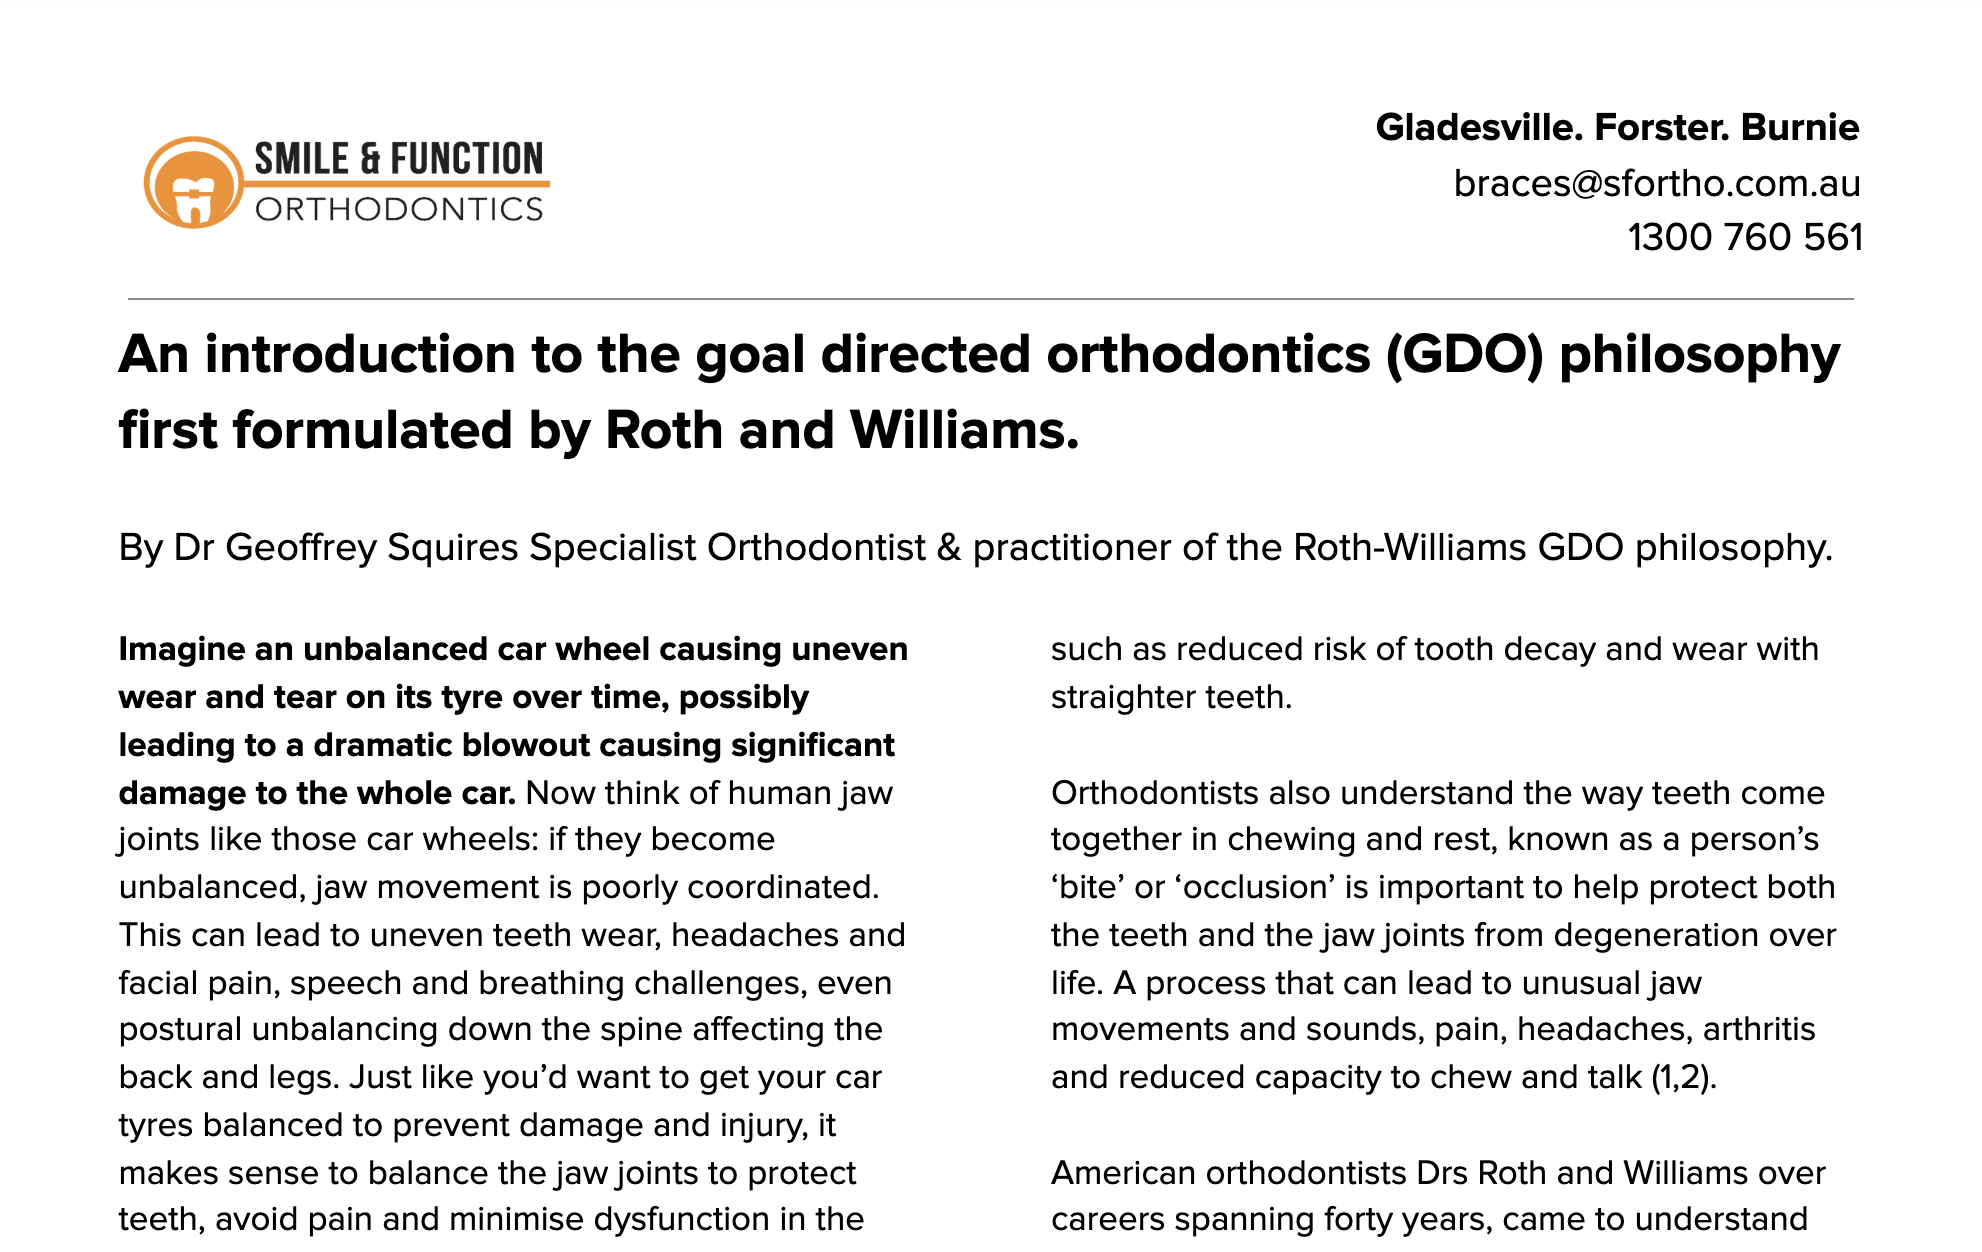 GDO for patients - By Dr Geoffrey Squires Specialist Orthodontist